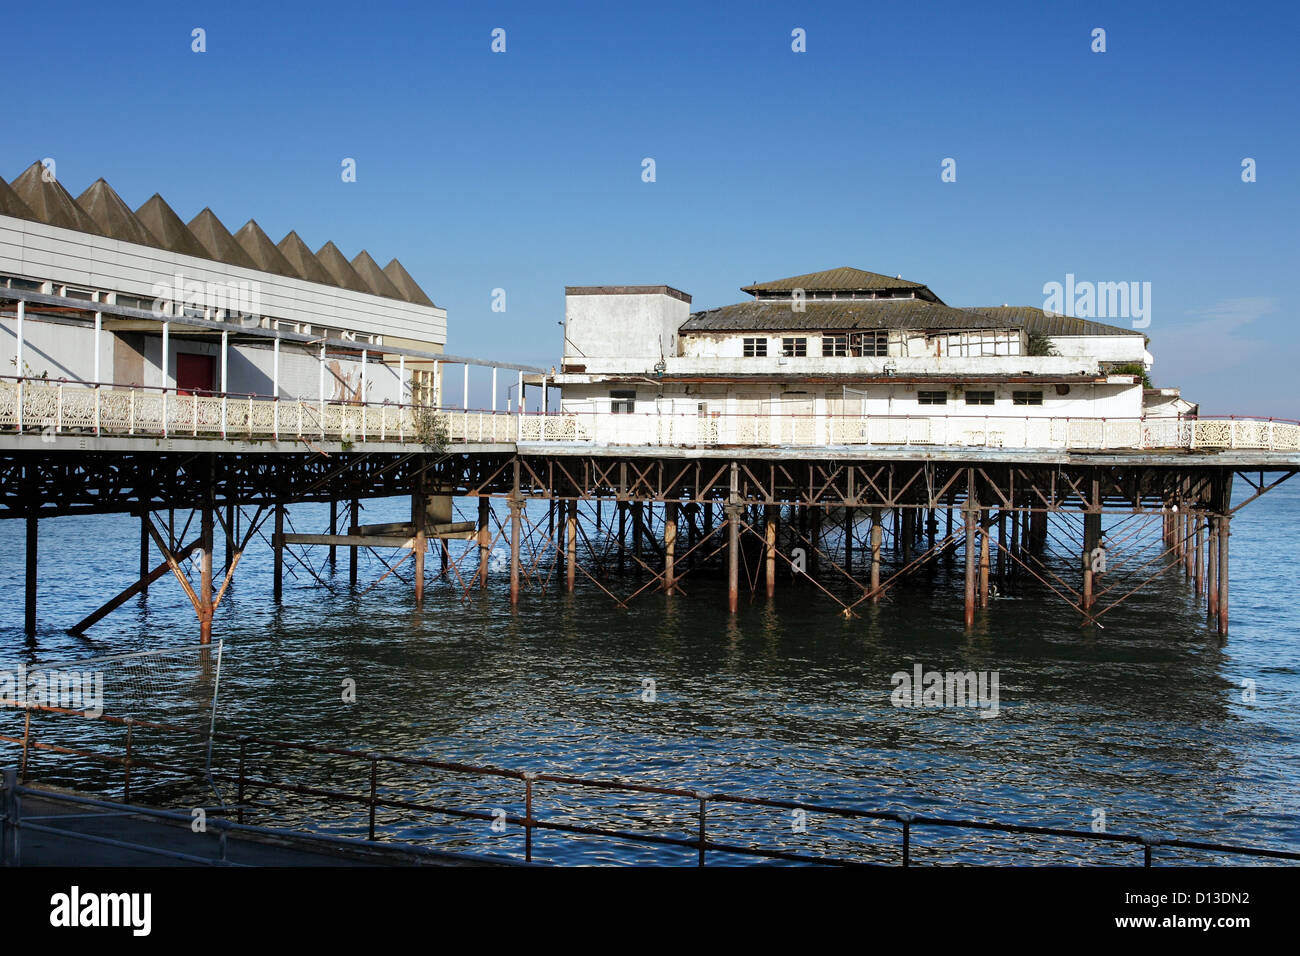 The old dilapidated Victoran Pier in Colwyn Bay, North Wales. - Stock Image